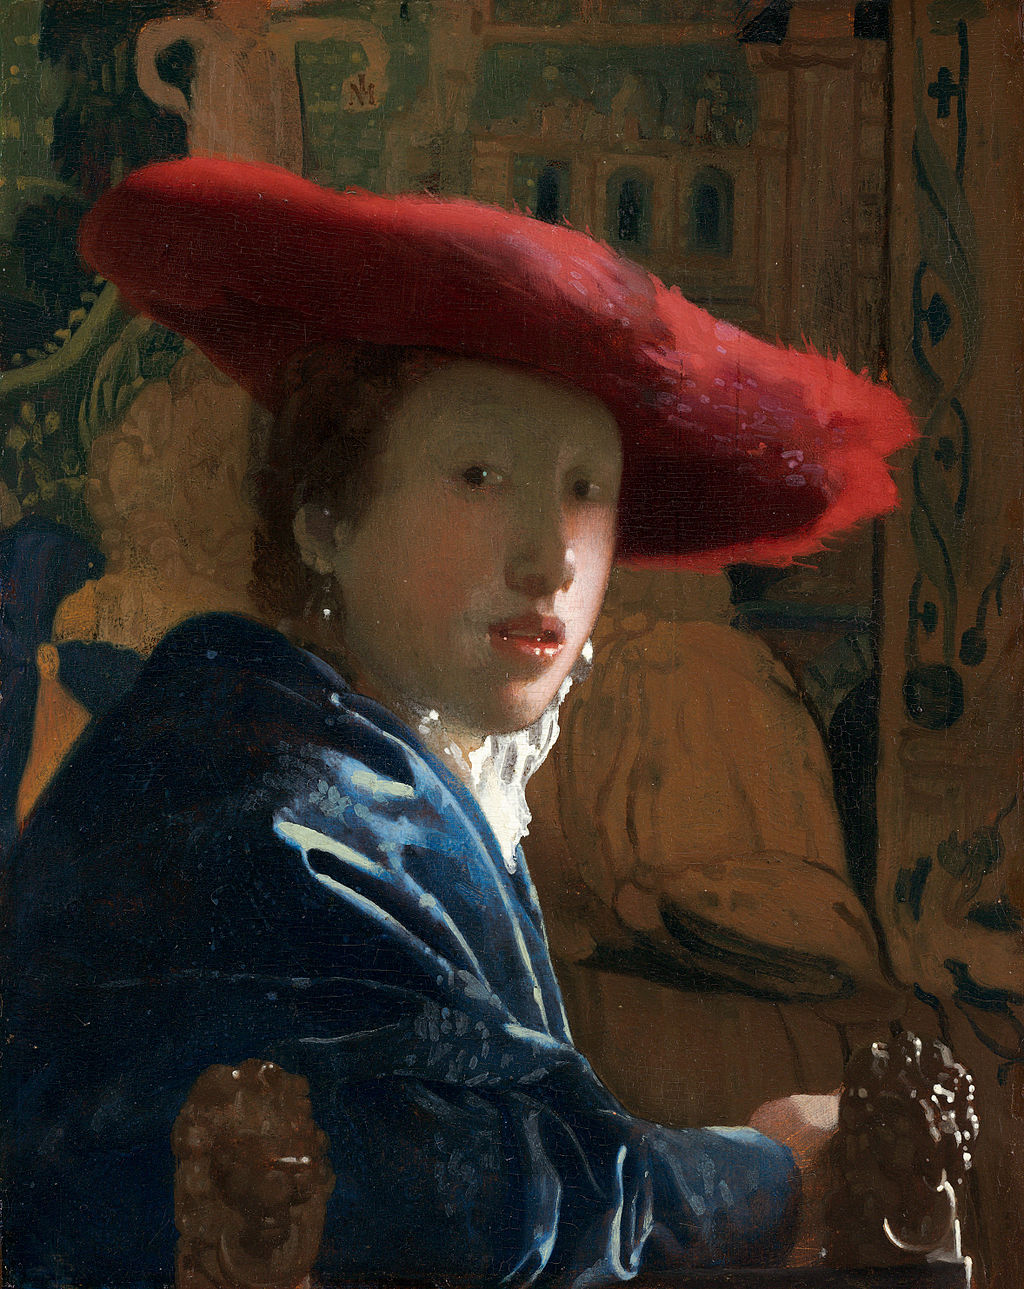 Girl with a Red Hat by Johannes Vermeer in the National Gallery of Art in Washington, DC